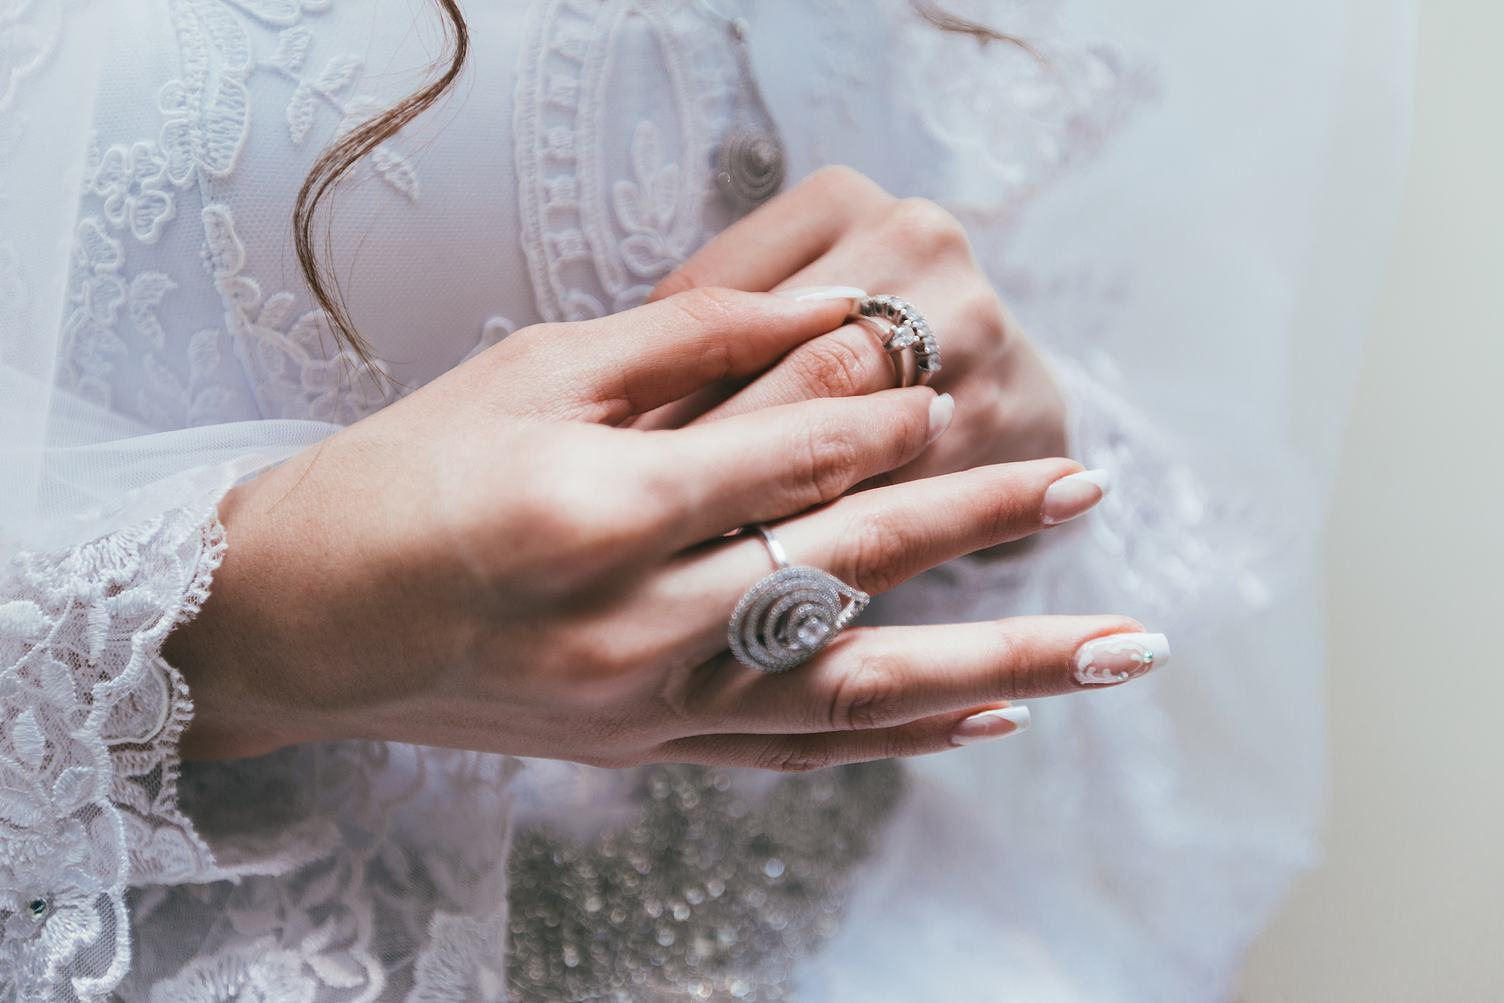 Hands of the Bride against White Wedding Dress